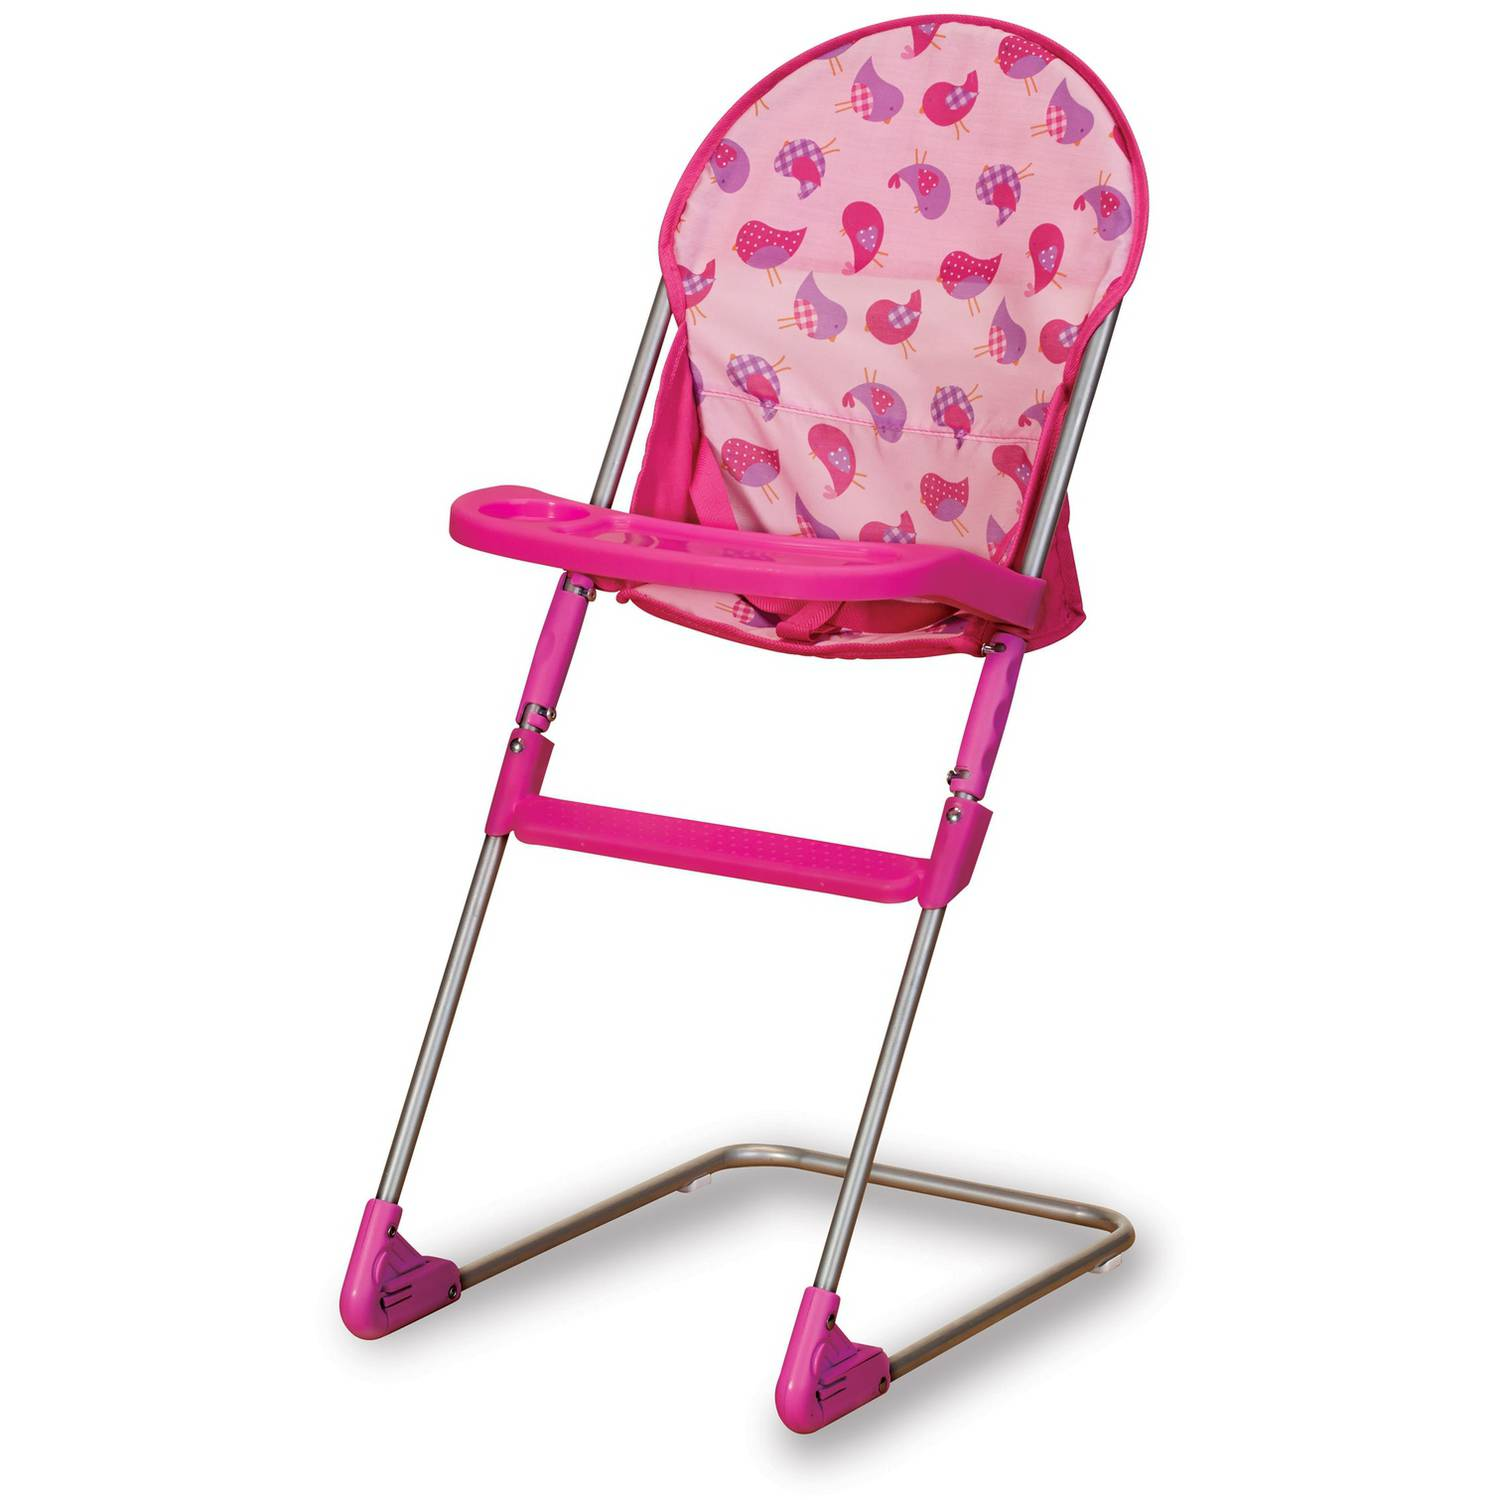 sc 1 st  Walmart & MSL Doll High Chair - Walmart.com